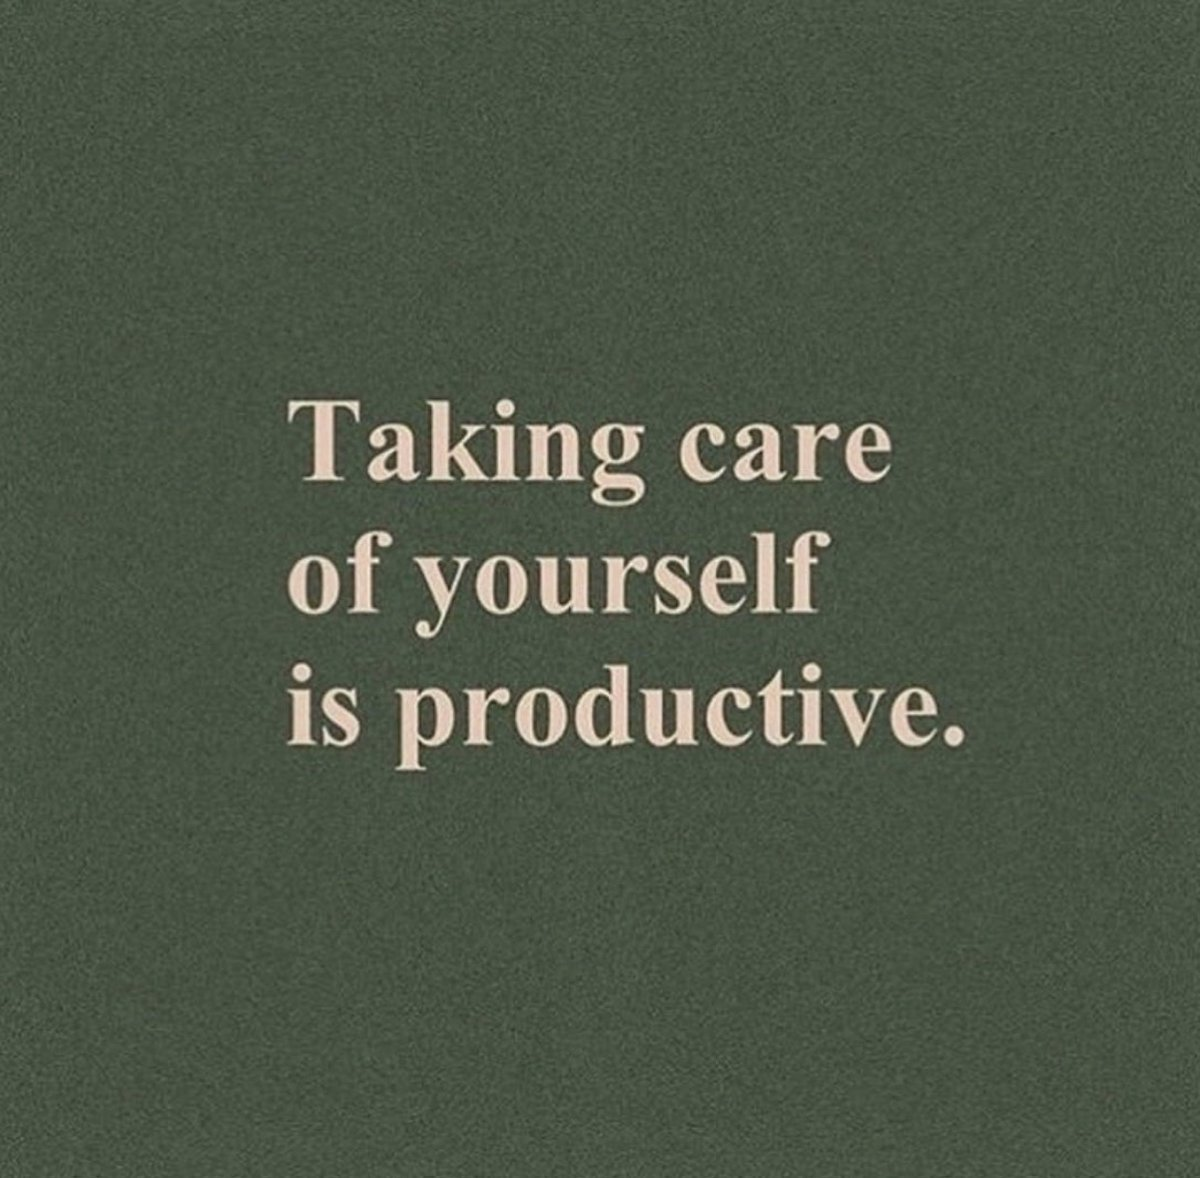 Mental Health Monday! It's easy to fall into depression, so what are you doing to take care of yourself? I FaceTime family & friends, laugh at Instagram, watch documentaries but most importantly I meditate. #stayhome #staypositive #stayhealthy #staysafe #instagram #blacktwitter